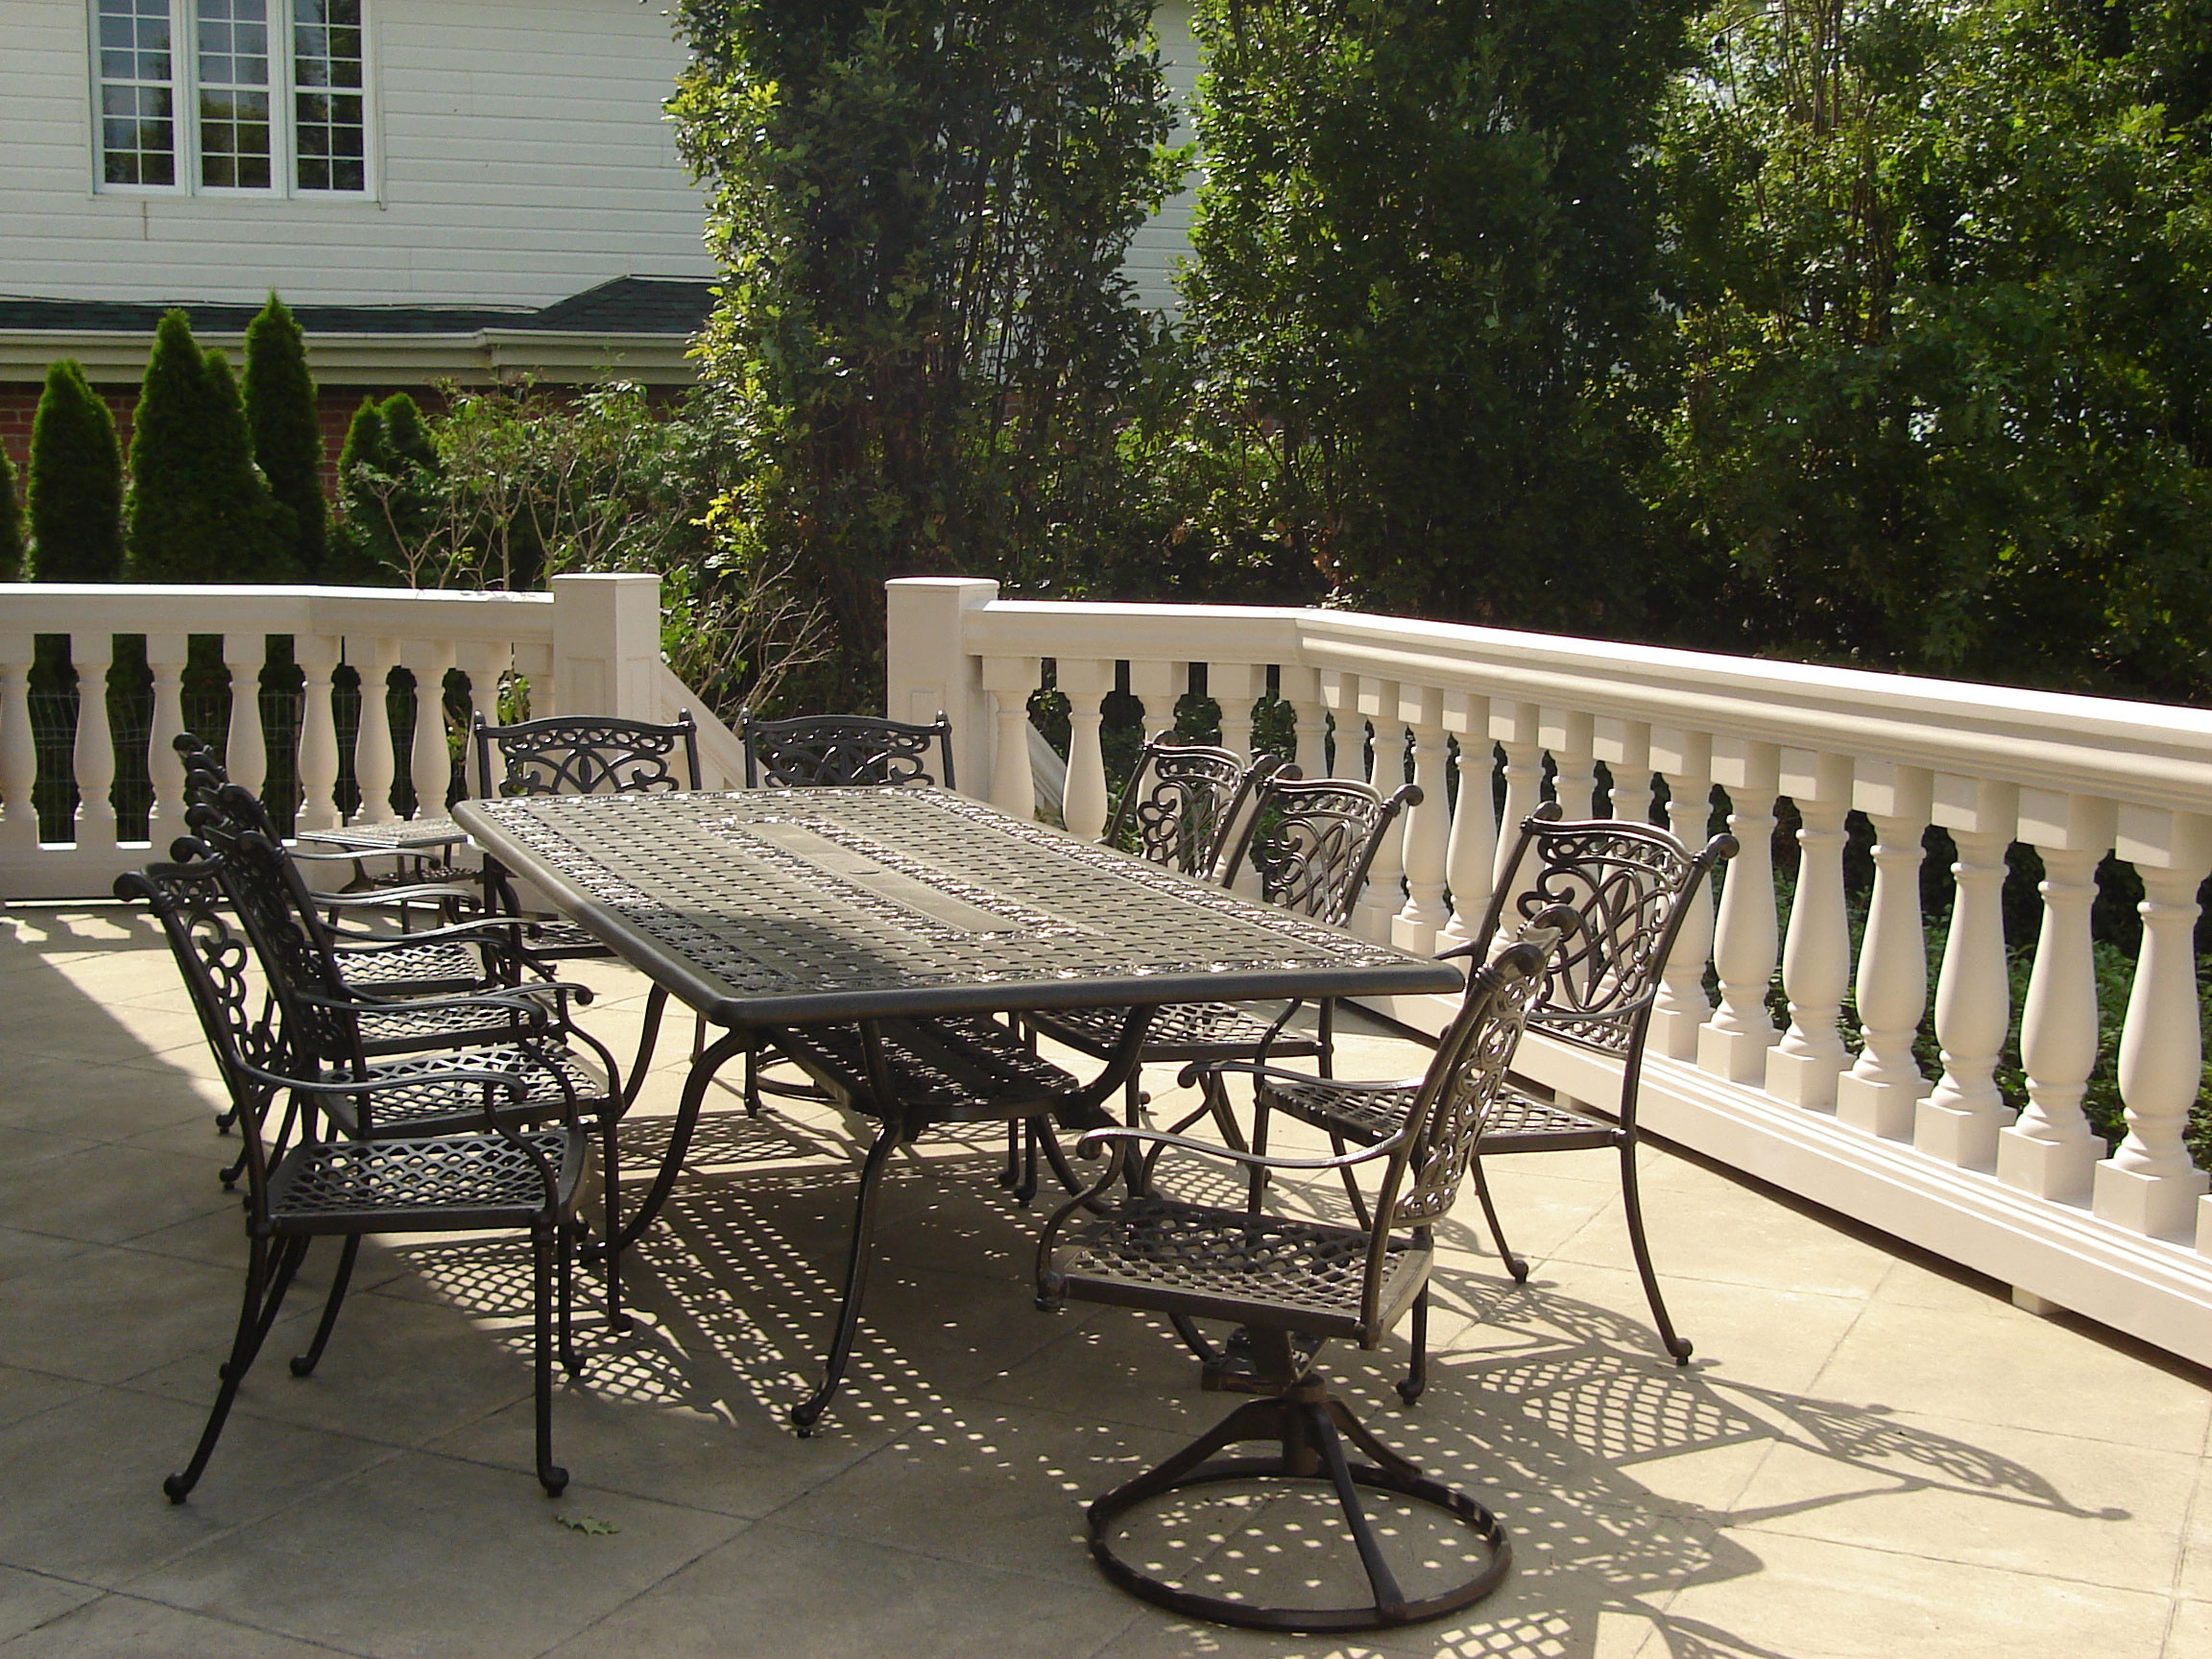 Decorative columns and balustrades